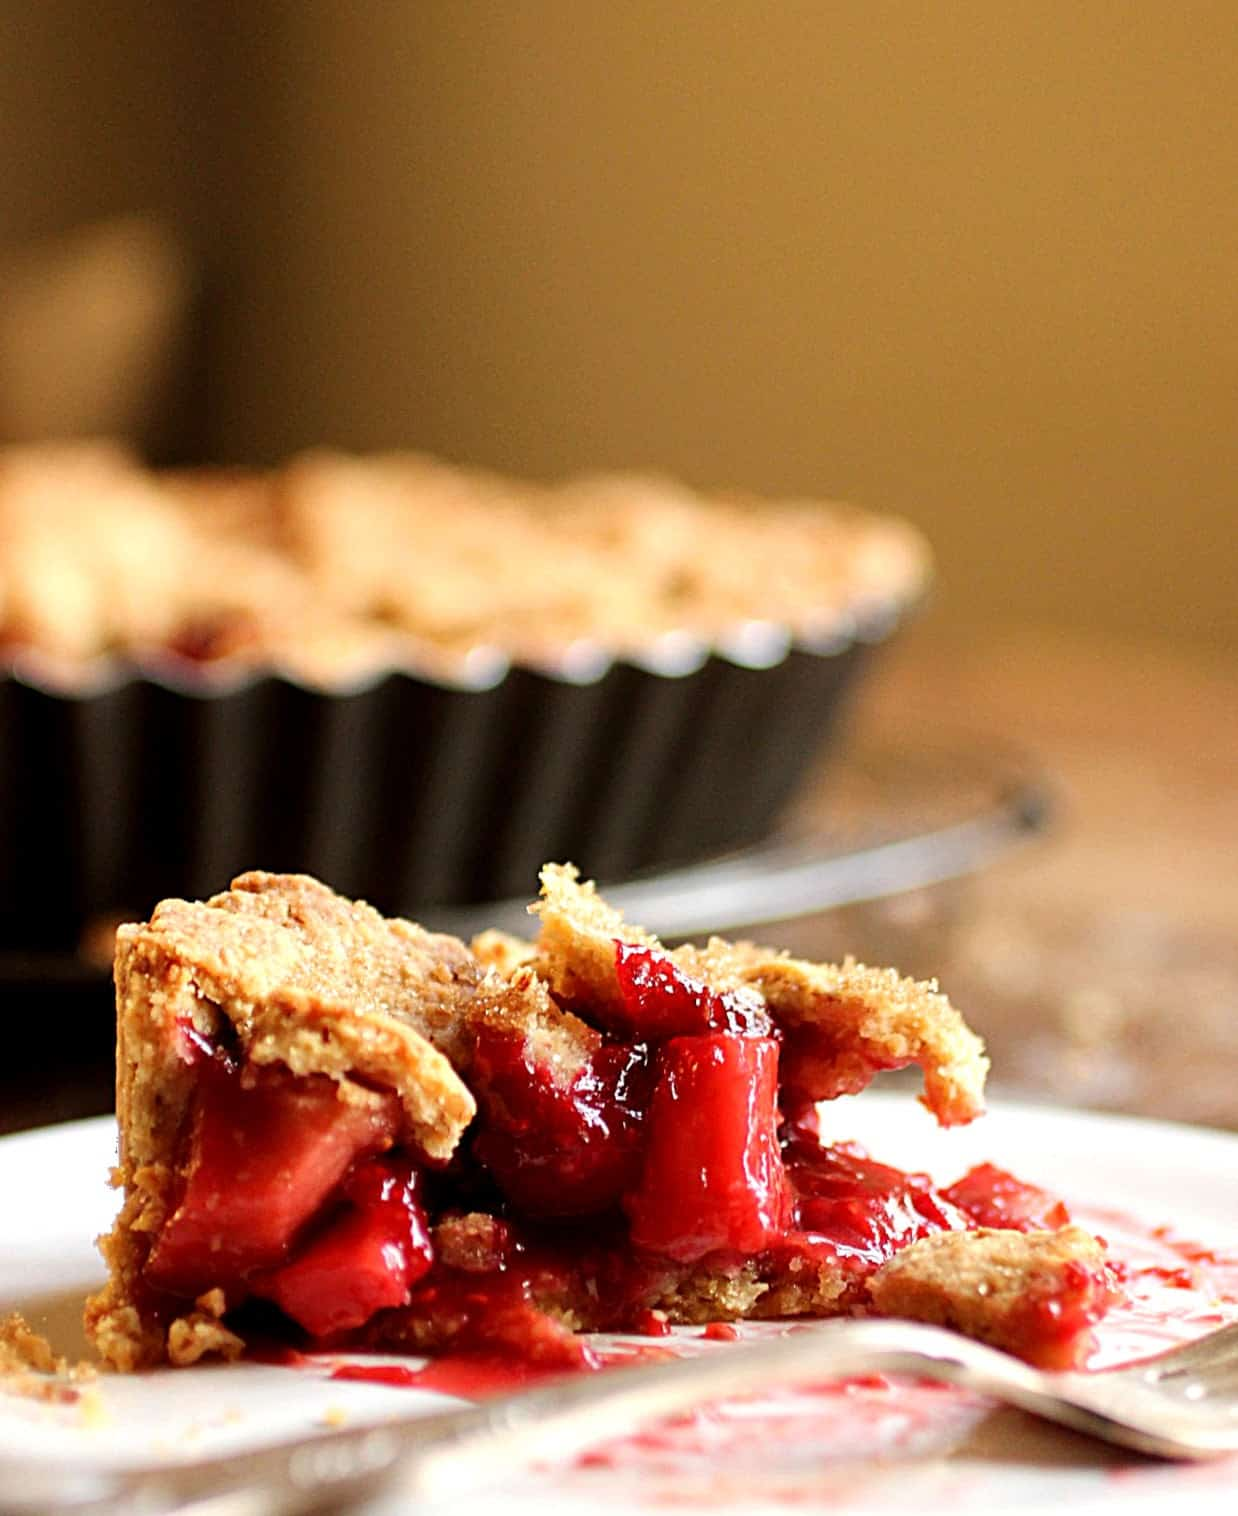 Slice of apple raspberry pie on white plate, pie pan and wooden table on background